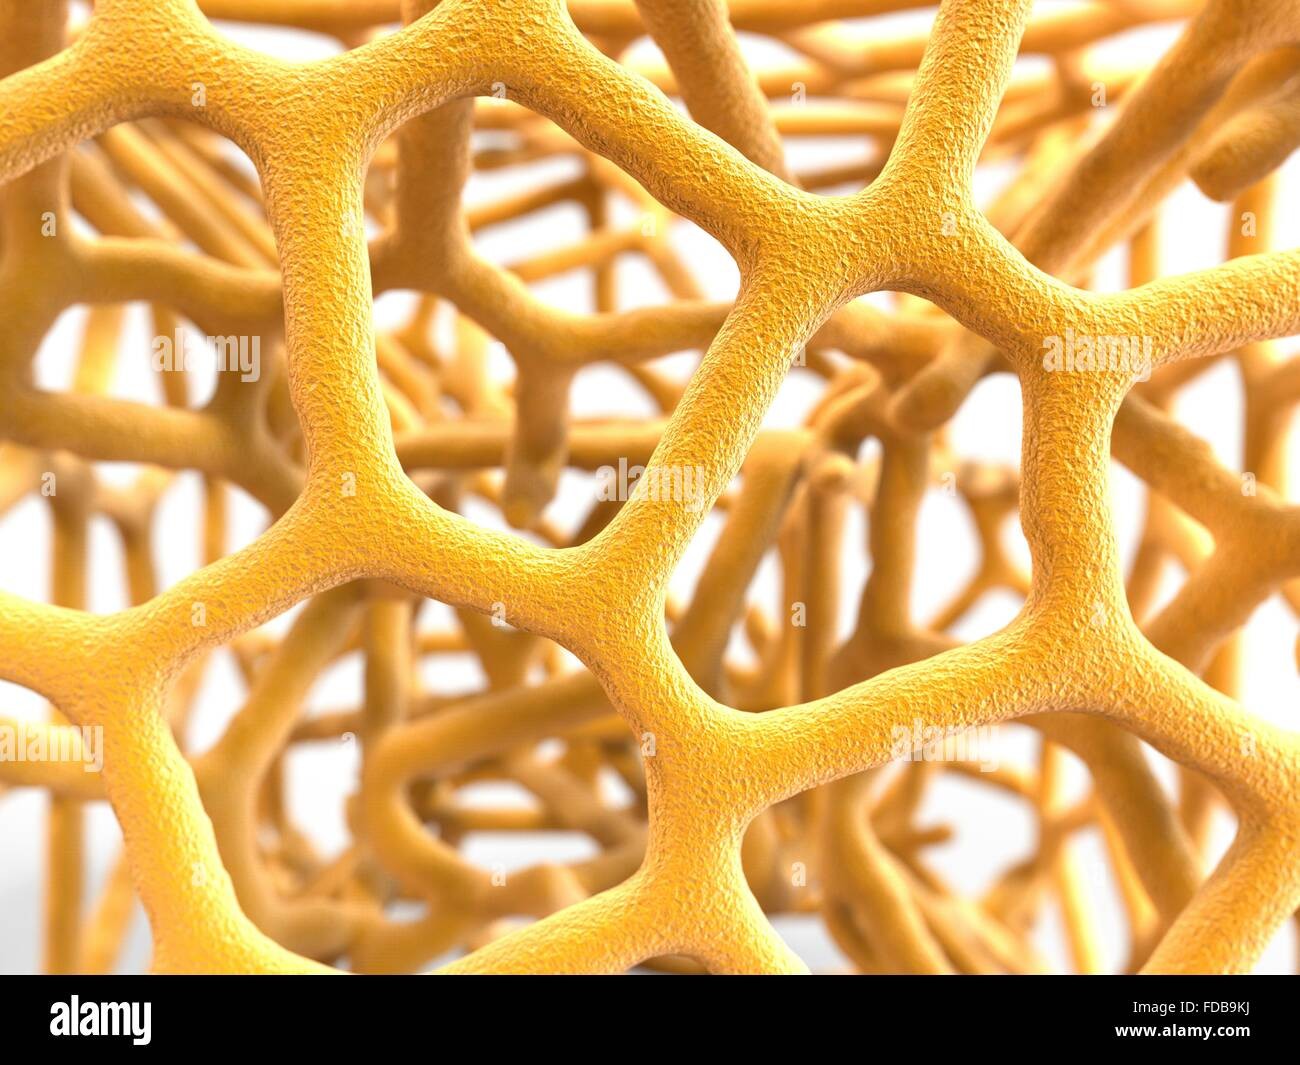 Osteoporosis. Computer artwork of the trabeculae in the cancellous (spongy) bone tissue affected by osteoporosis. - Stock Image